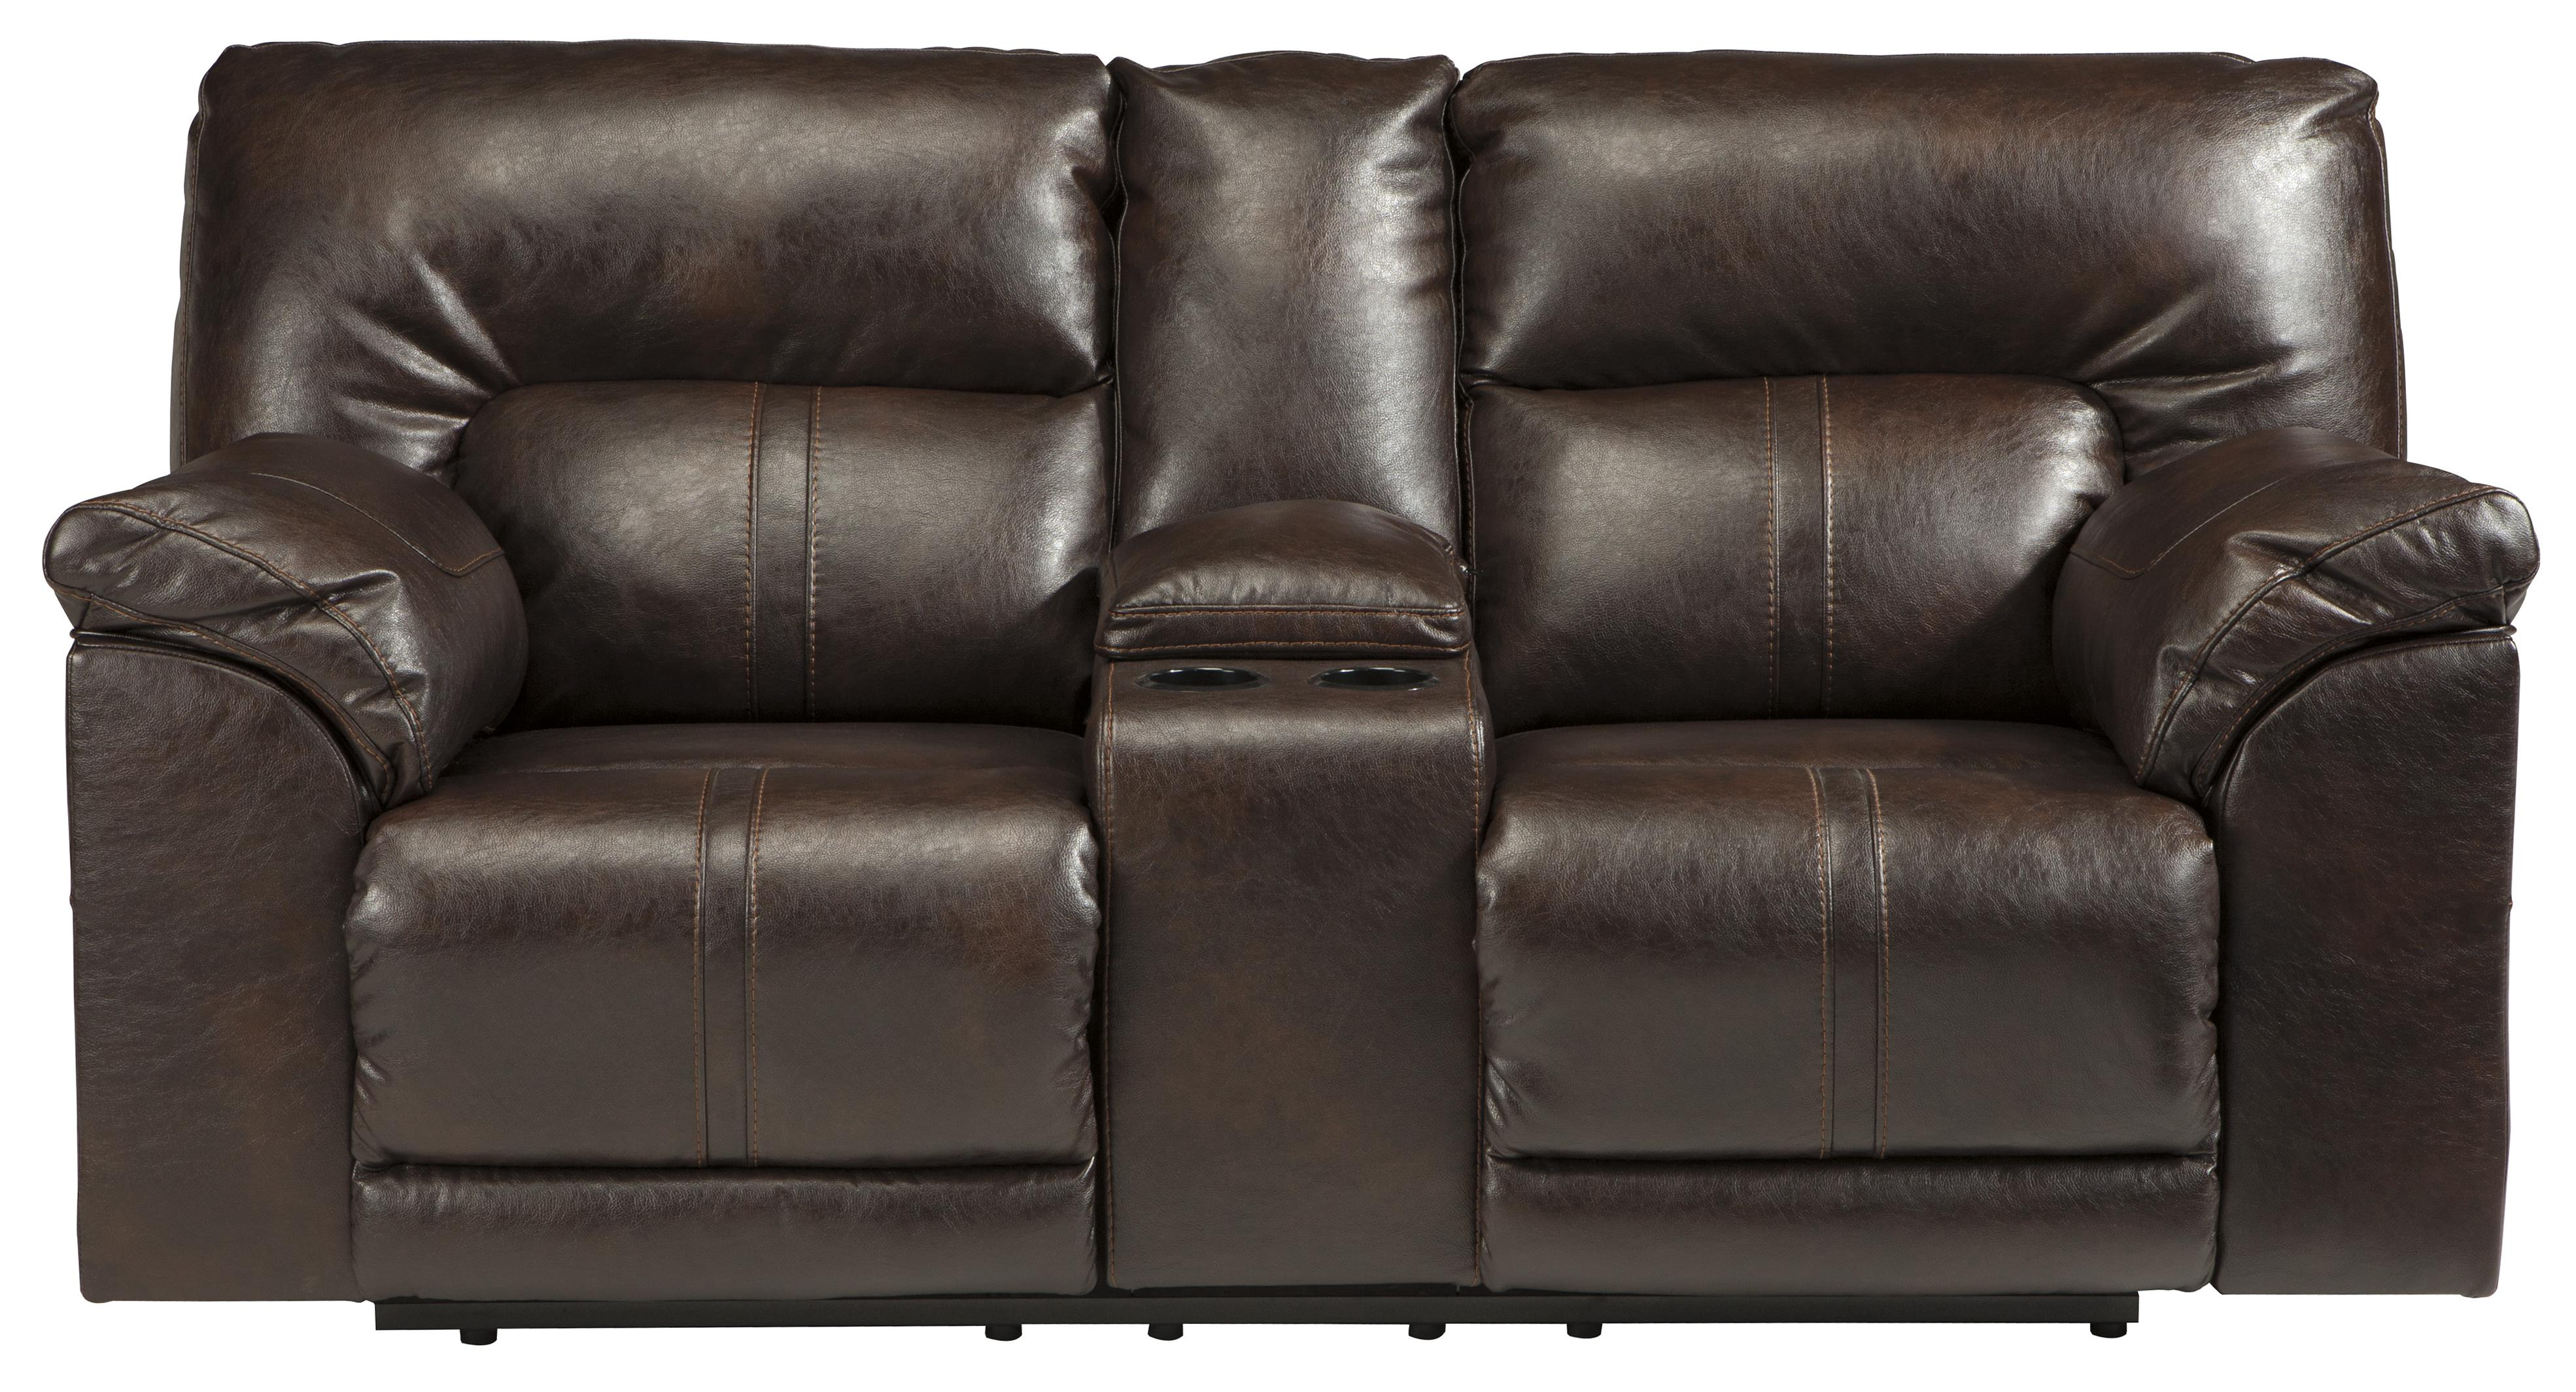 Benchcraft Barrettsville DuraBlend® Double Rec Power Loveseat w/ Console - Item Number: 4730196